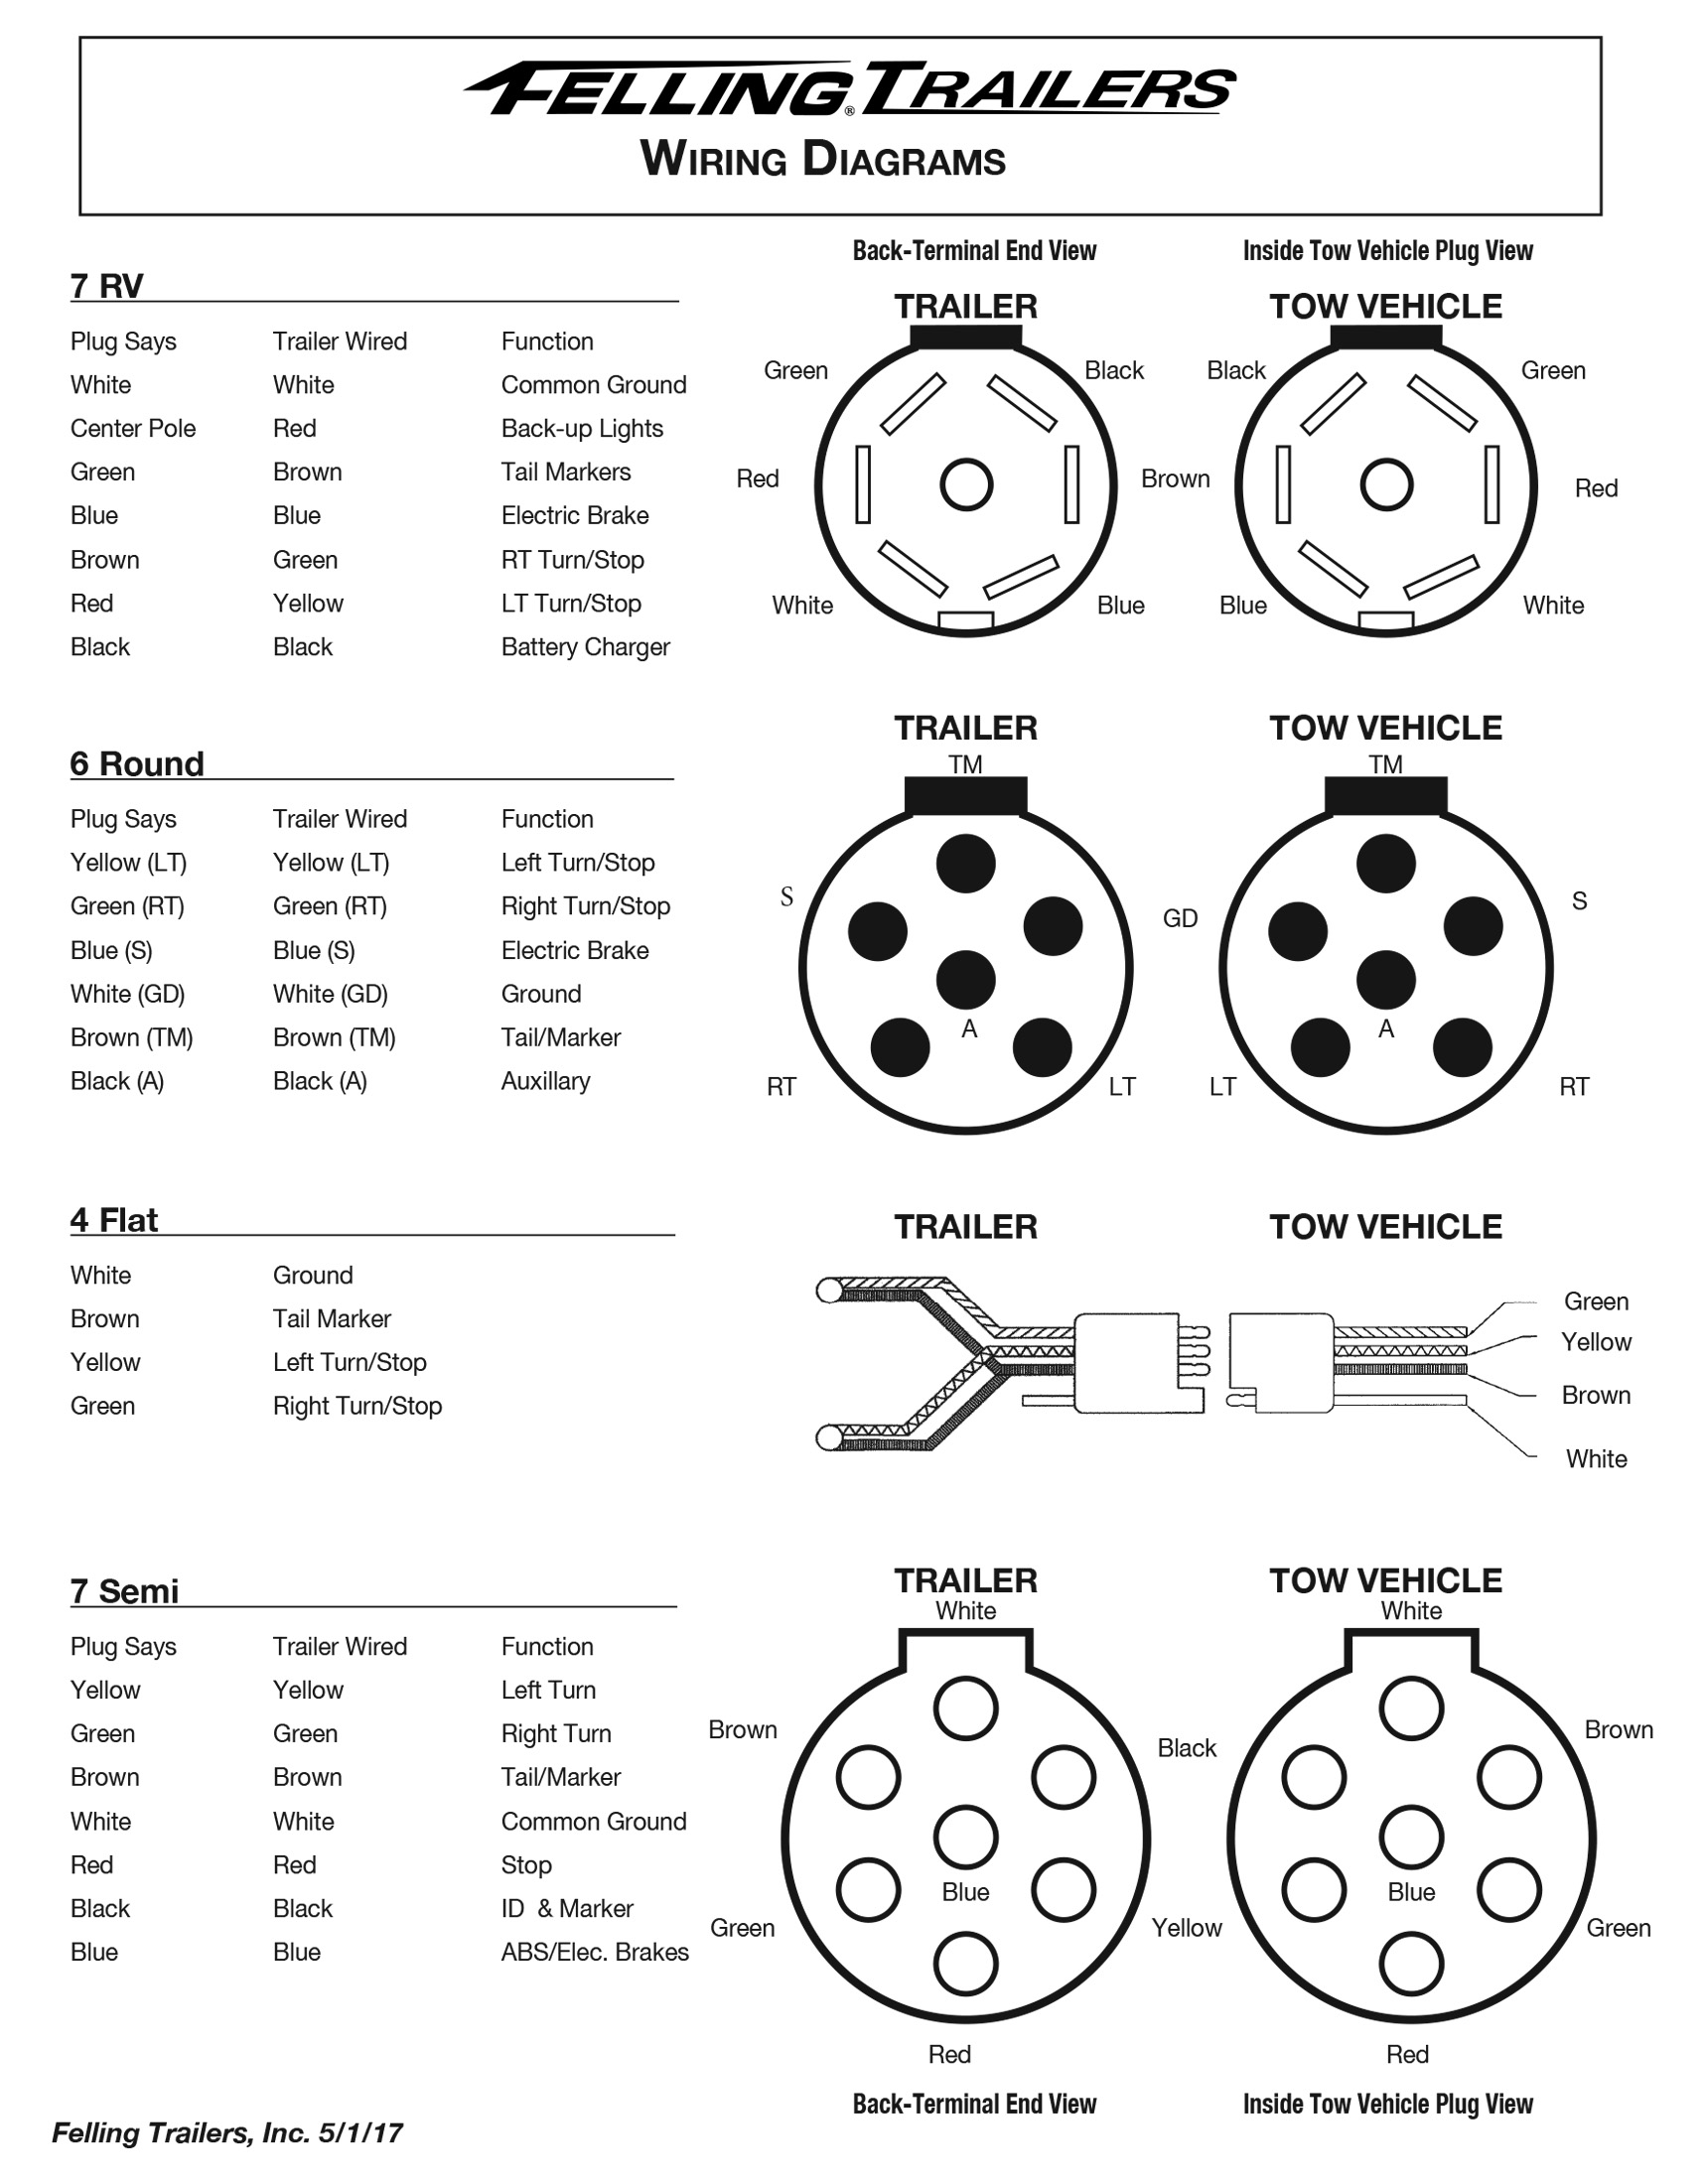 Service- Felling Trailers Wiring Diagrams, Wheel Toque on